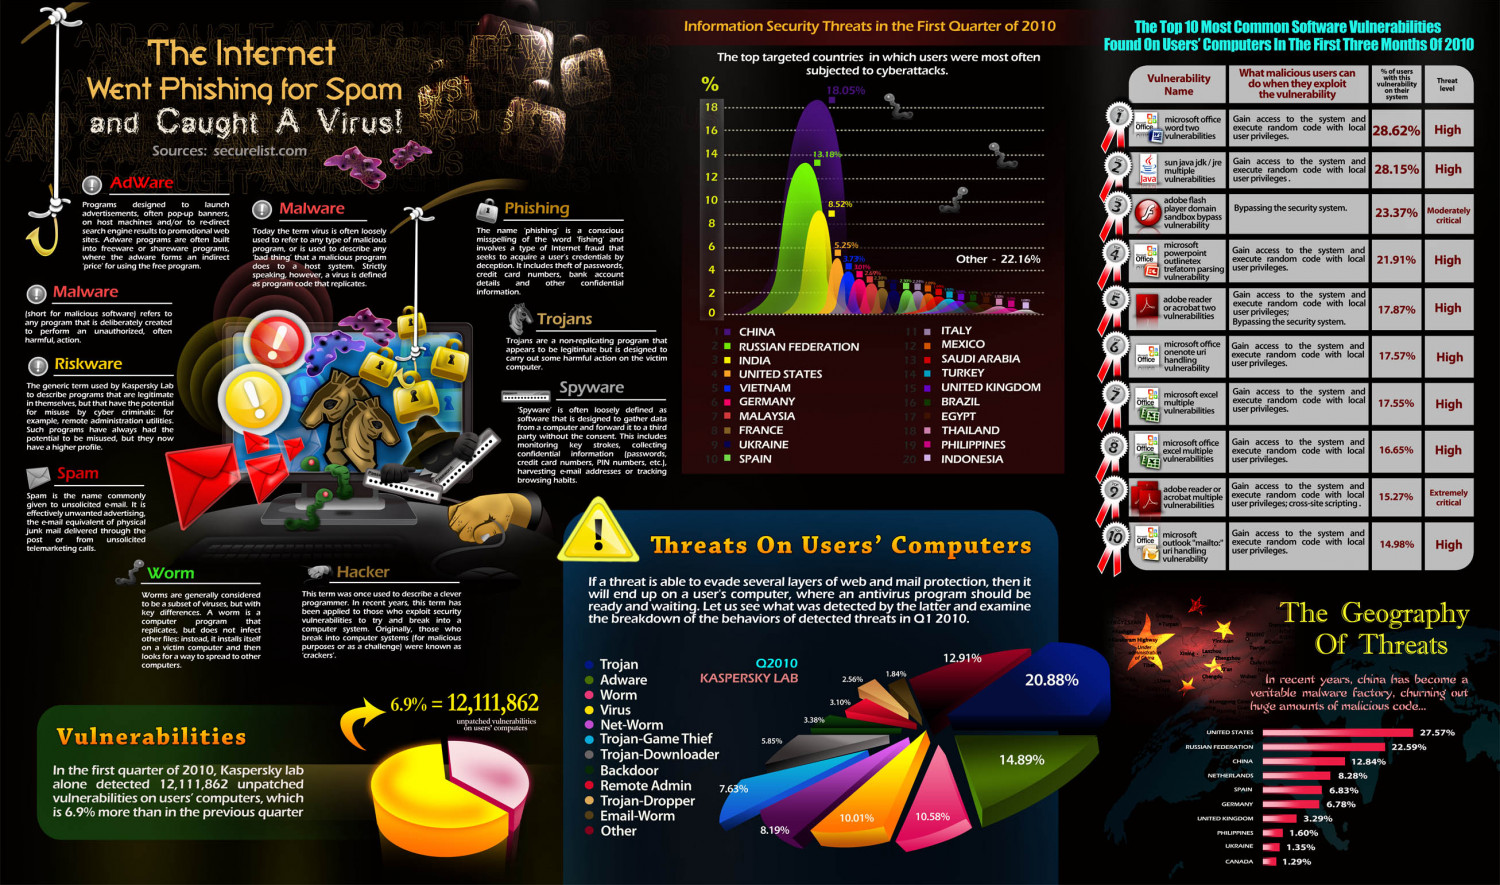 IT Security Threats Q1 2010 Infographic